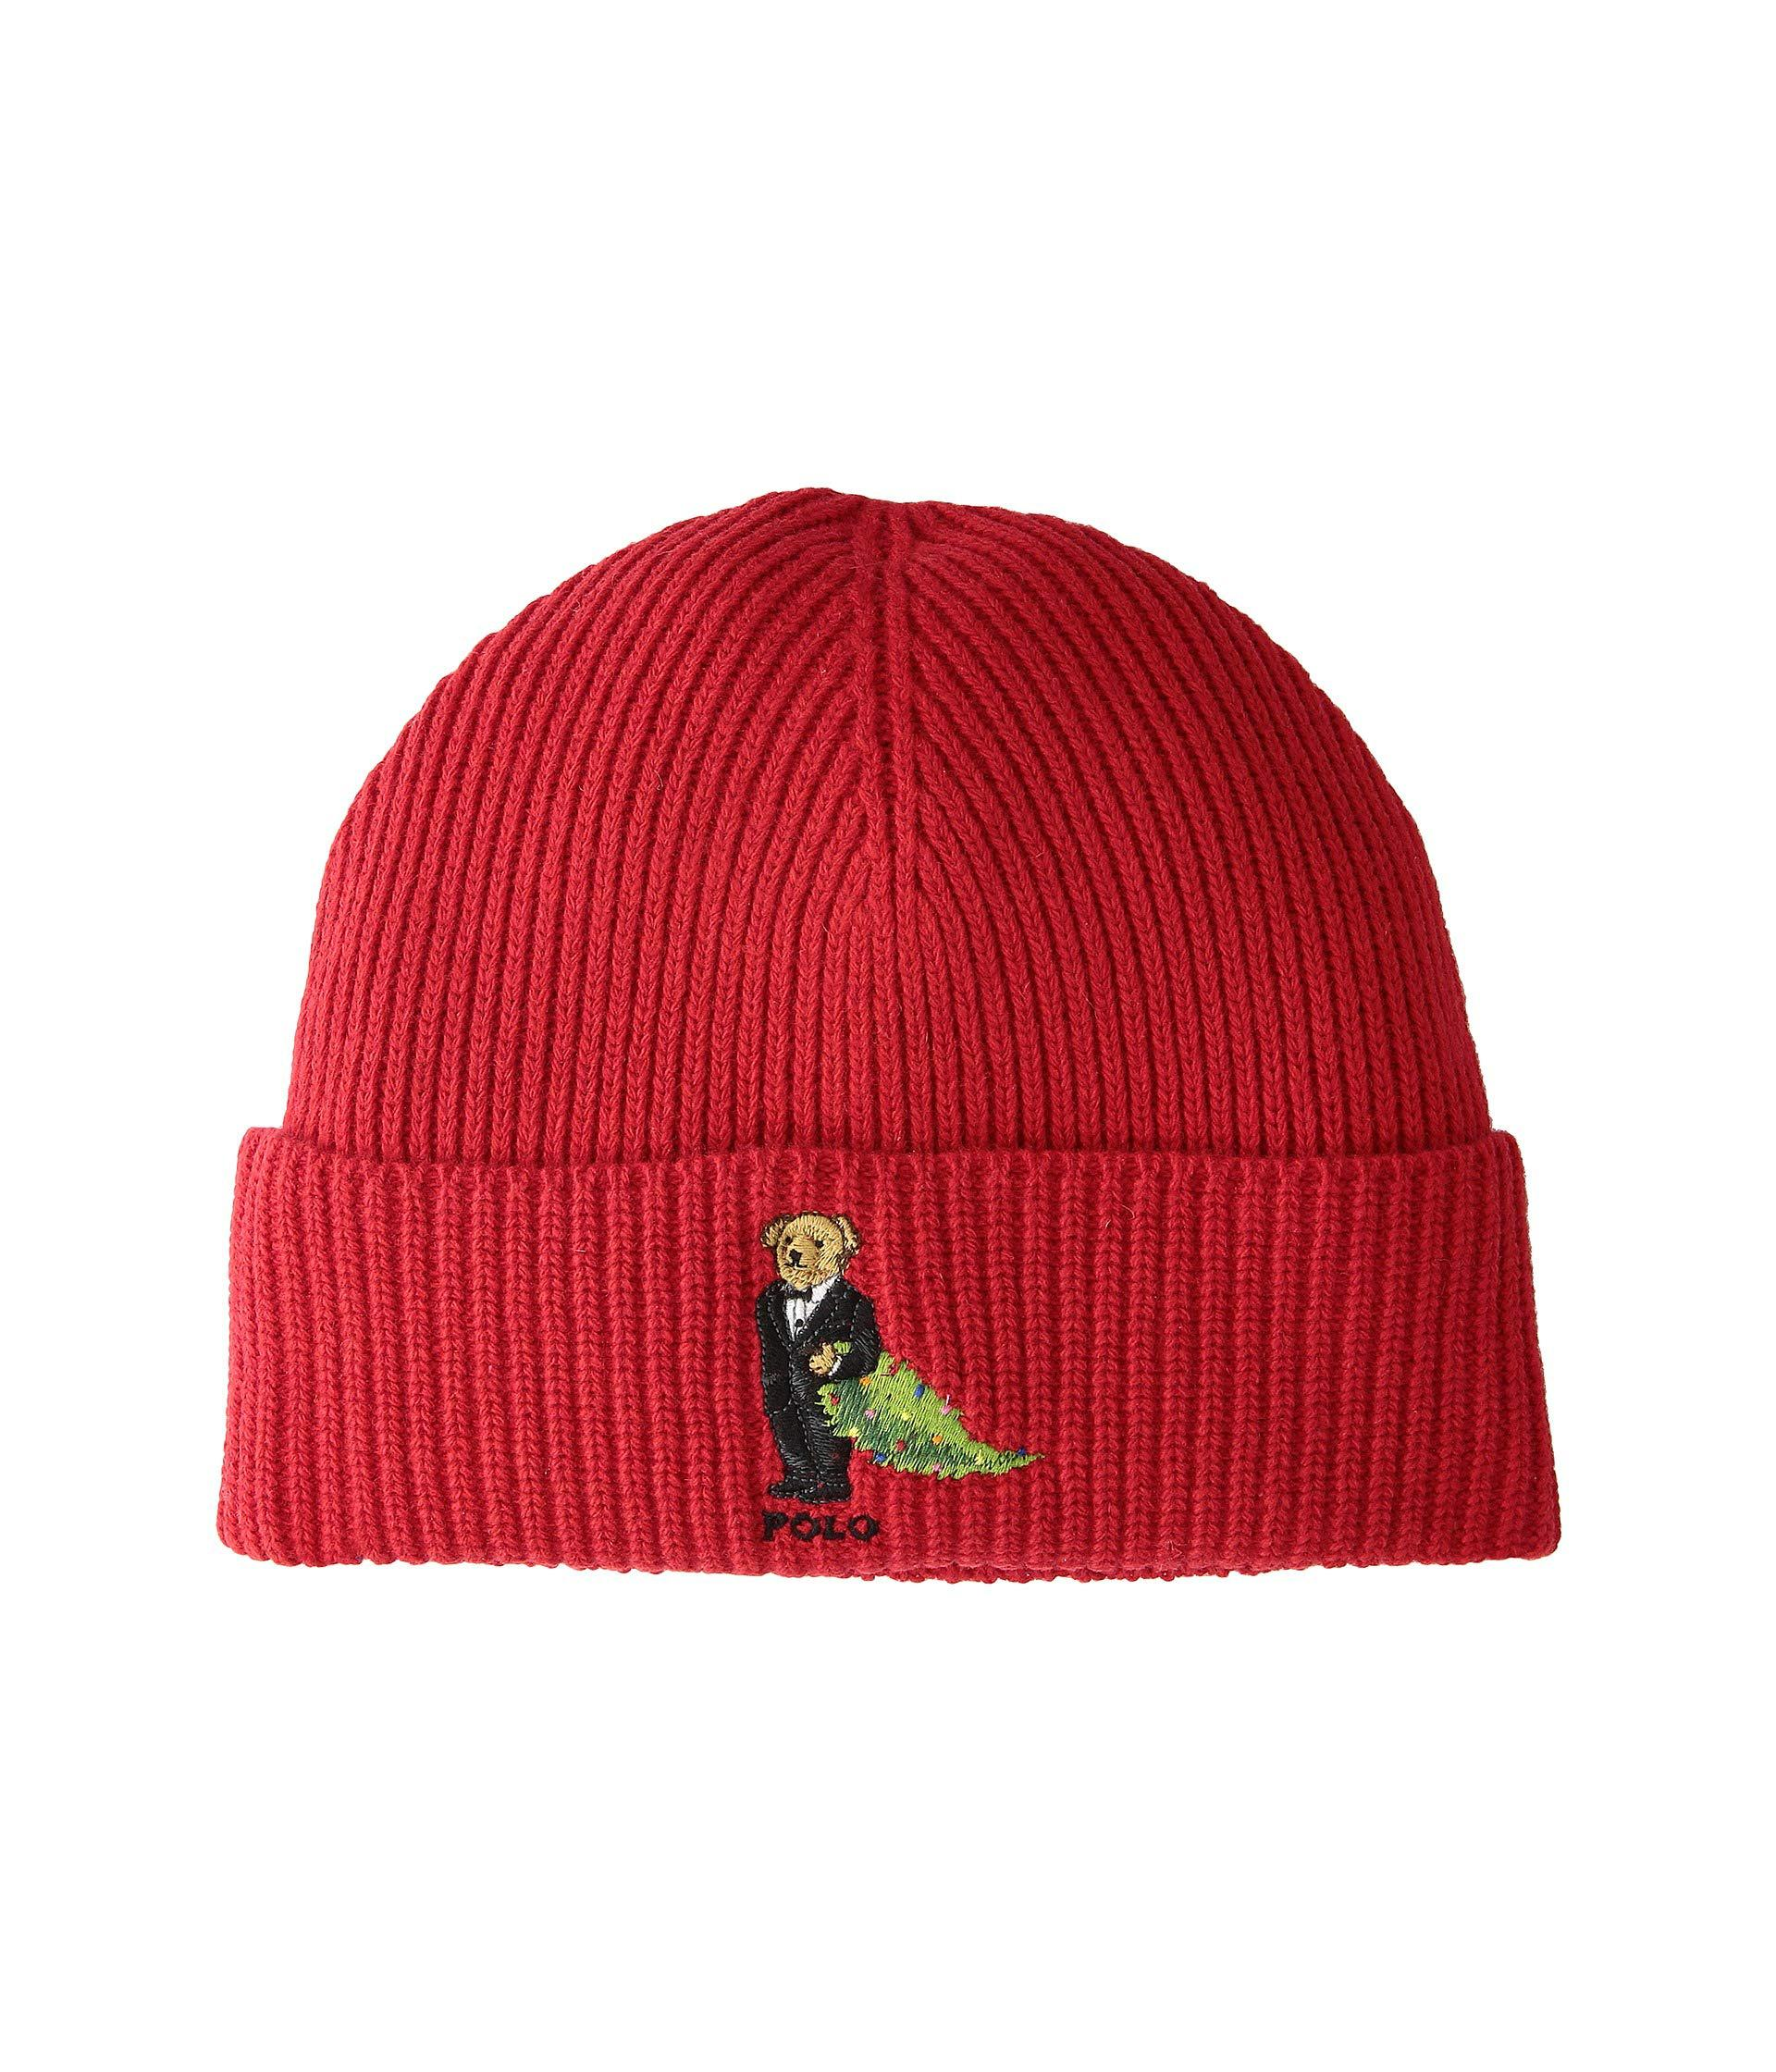 150ea4e0 Polo Ralph Lauren Christmas Tree Bear Cuff Hat (red) Beanies for men